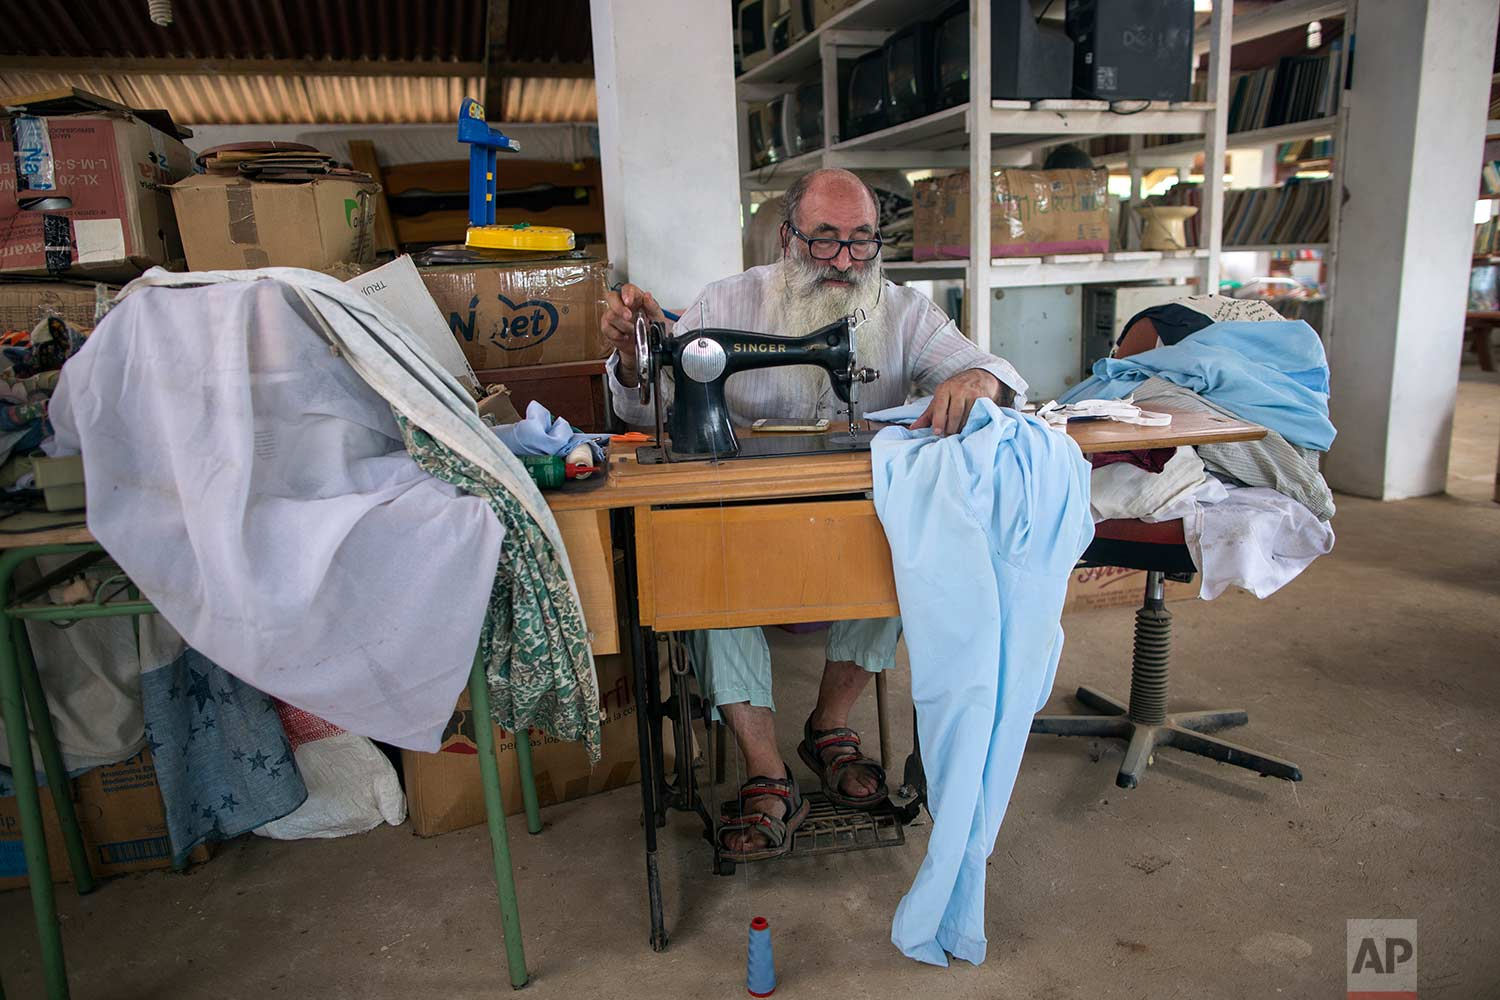 In this Jan. 13, 2018 photo, Father Pablo Zabala, better known as Padre Pablo, sews himself a new pair of pajamas at the parish in Boca Colorado, part of Peru's Madre de Dios province in the Amazon. Known for his eccentric style, the 70-year-old Spanish priest often celebrates Mass barefoot, and when not in his cassock can be seen wearing lightweight sleepwear, an outfit he says is ideal for the humid Amazon climate. (AP Photo/Rodrigo Abd) |  See these photos on AP Images